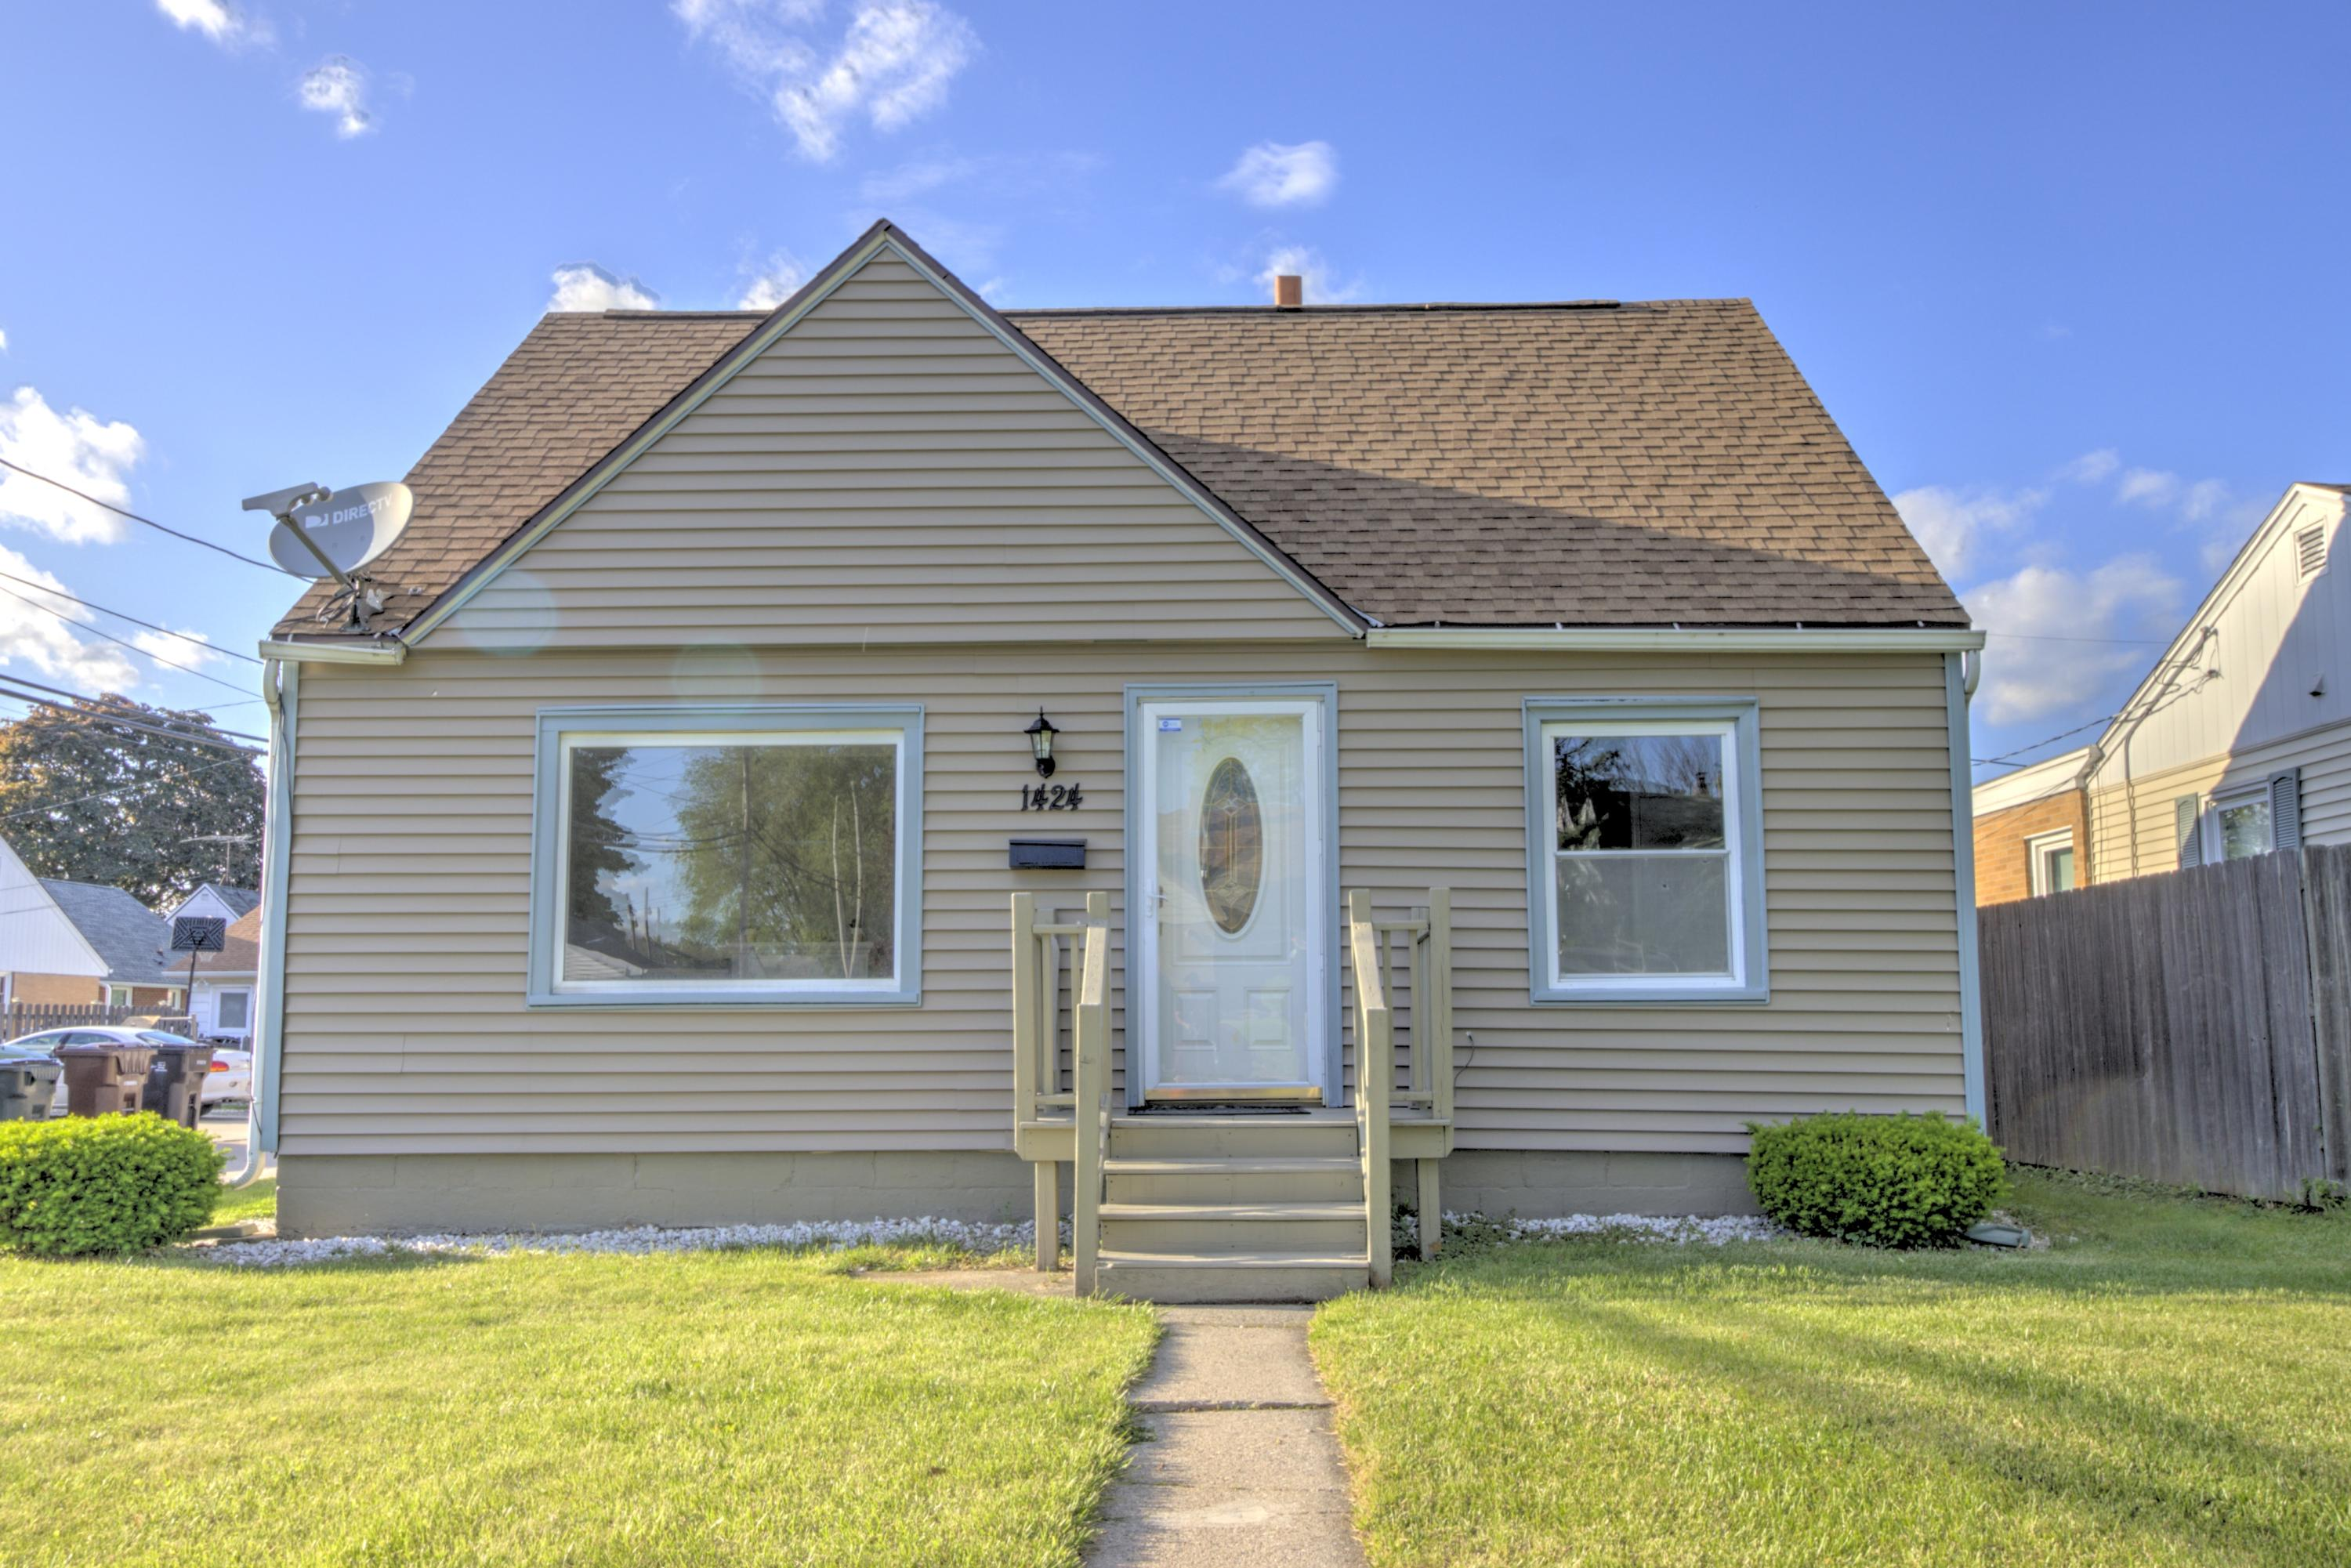 1424 Mackinac Ave, South Milwaukee, Wisconsin 53172, 4 Bedrooms Bedrooms, ,2 BathroomsBathrooms,Single-Family,For Sale,Mackinac Ave,1642963